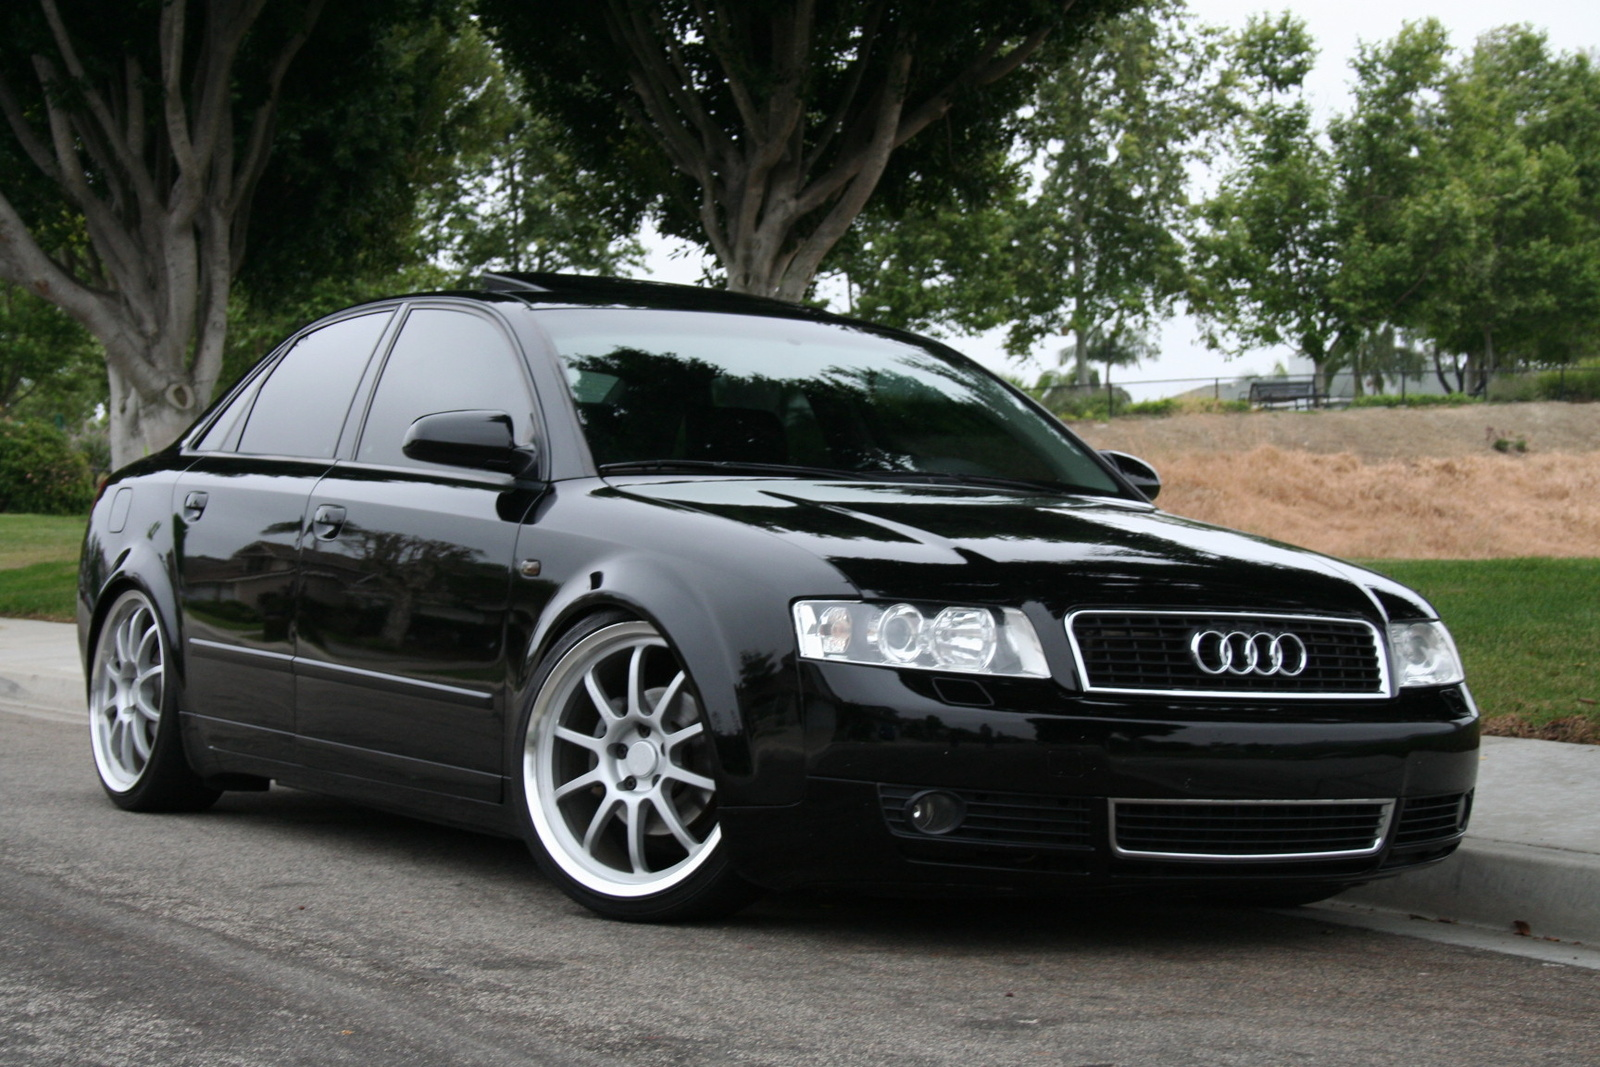 Audi A4 1.8T technical details, history, photos on Better Parts LTD